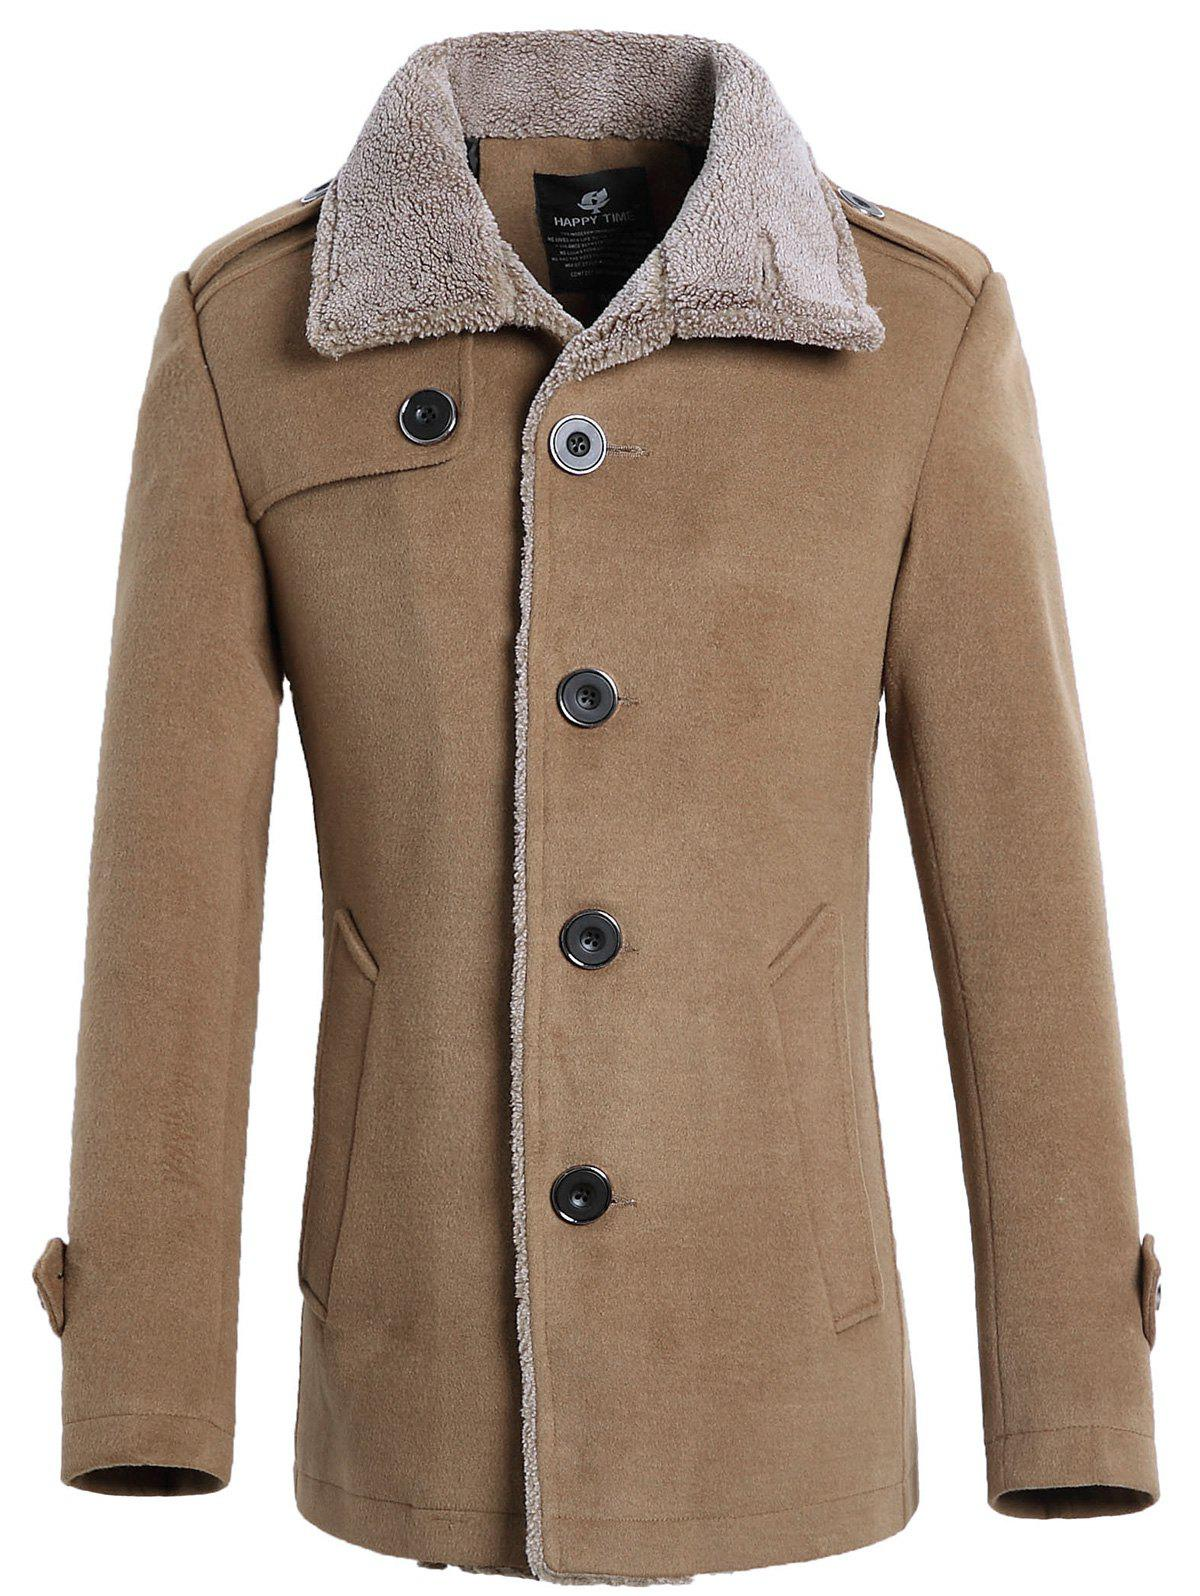 Fur-collar Single-breasted Wool Blend Jacket - KHAKI 2XL